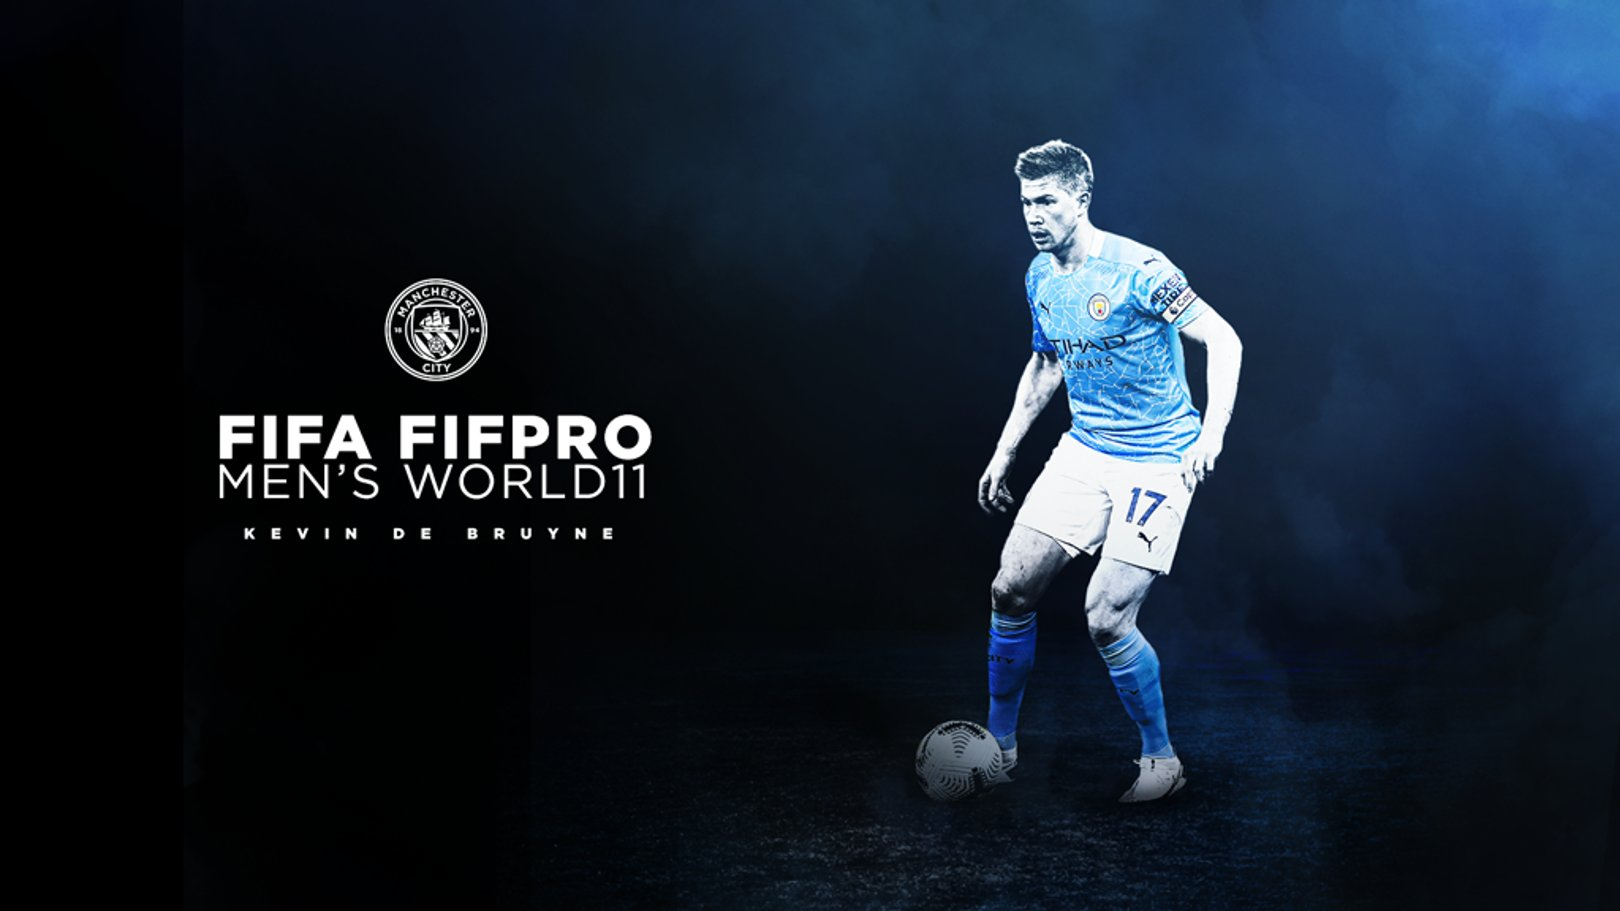 De Bruyne named in FIFPRO World XI